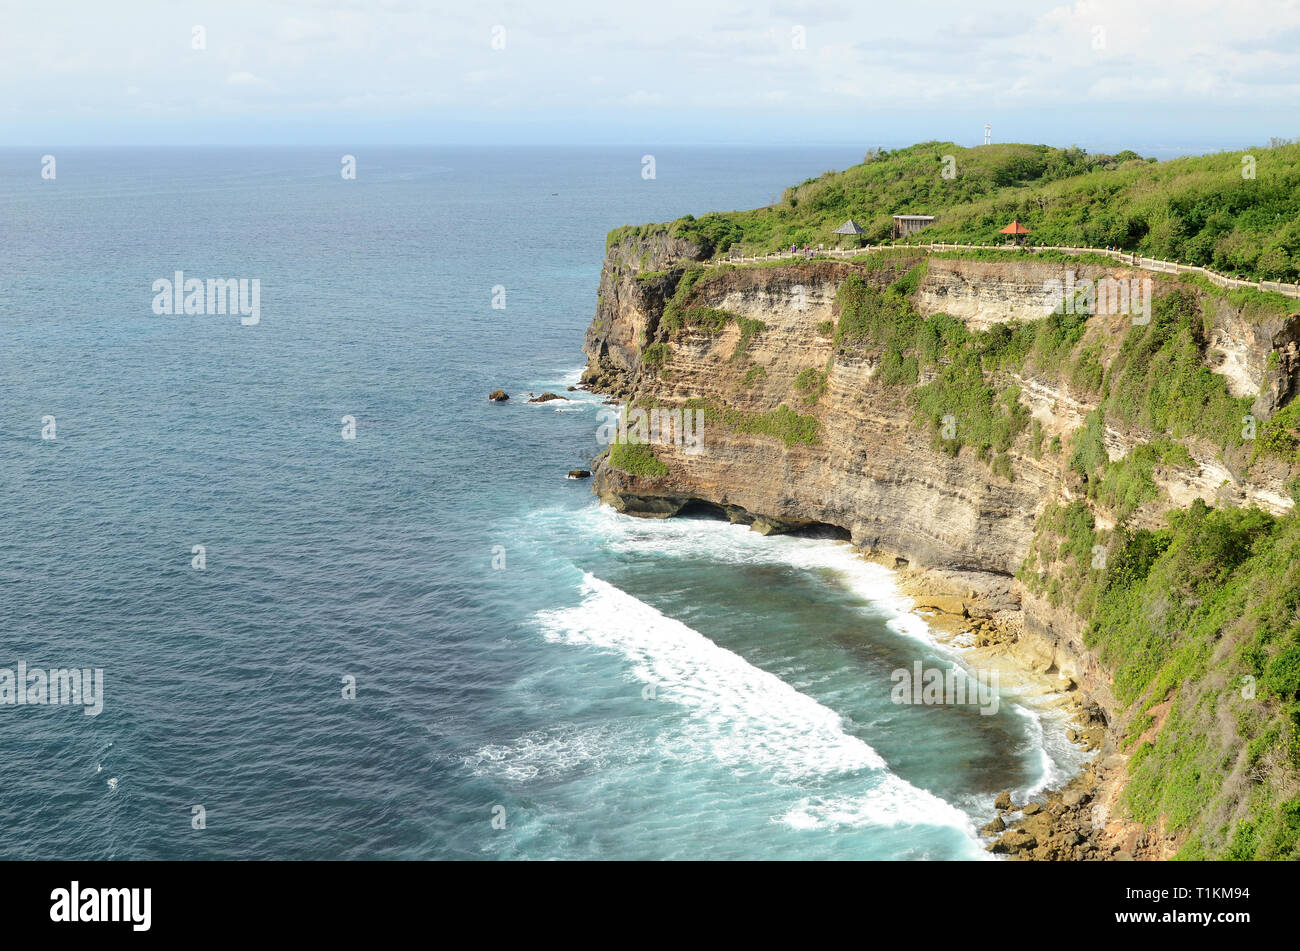 Pura Luhur Uluwatu temple in Bali, Indonesia with cliff with blue sky and sea Stock Photo